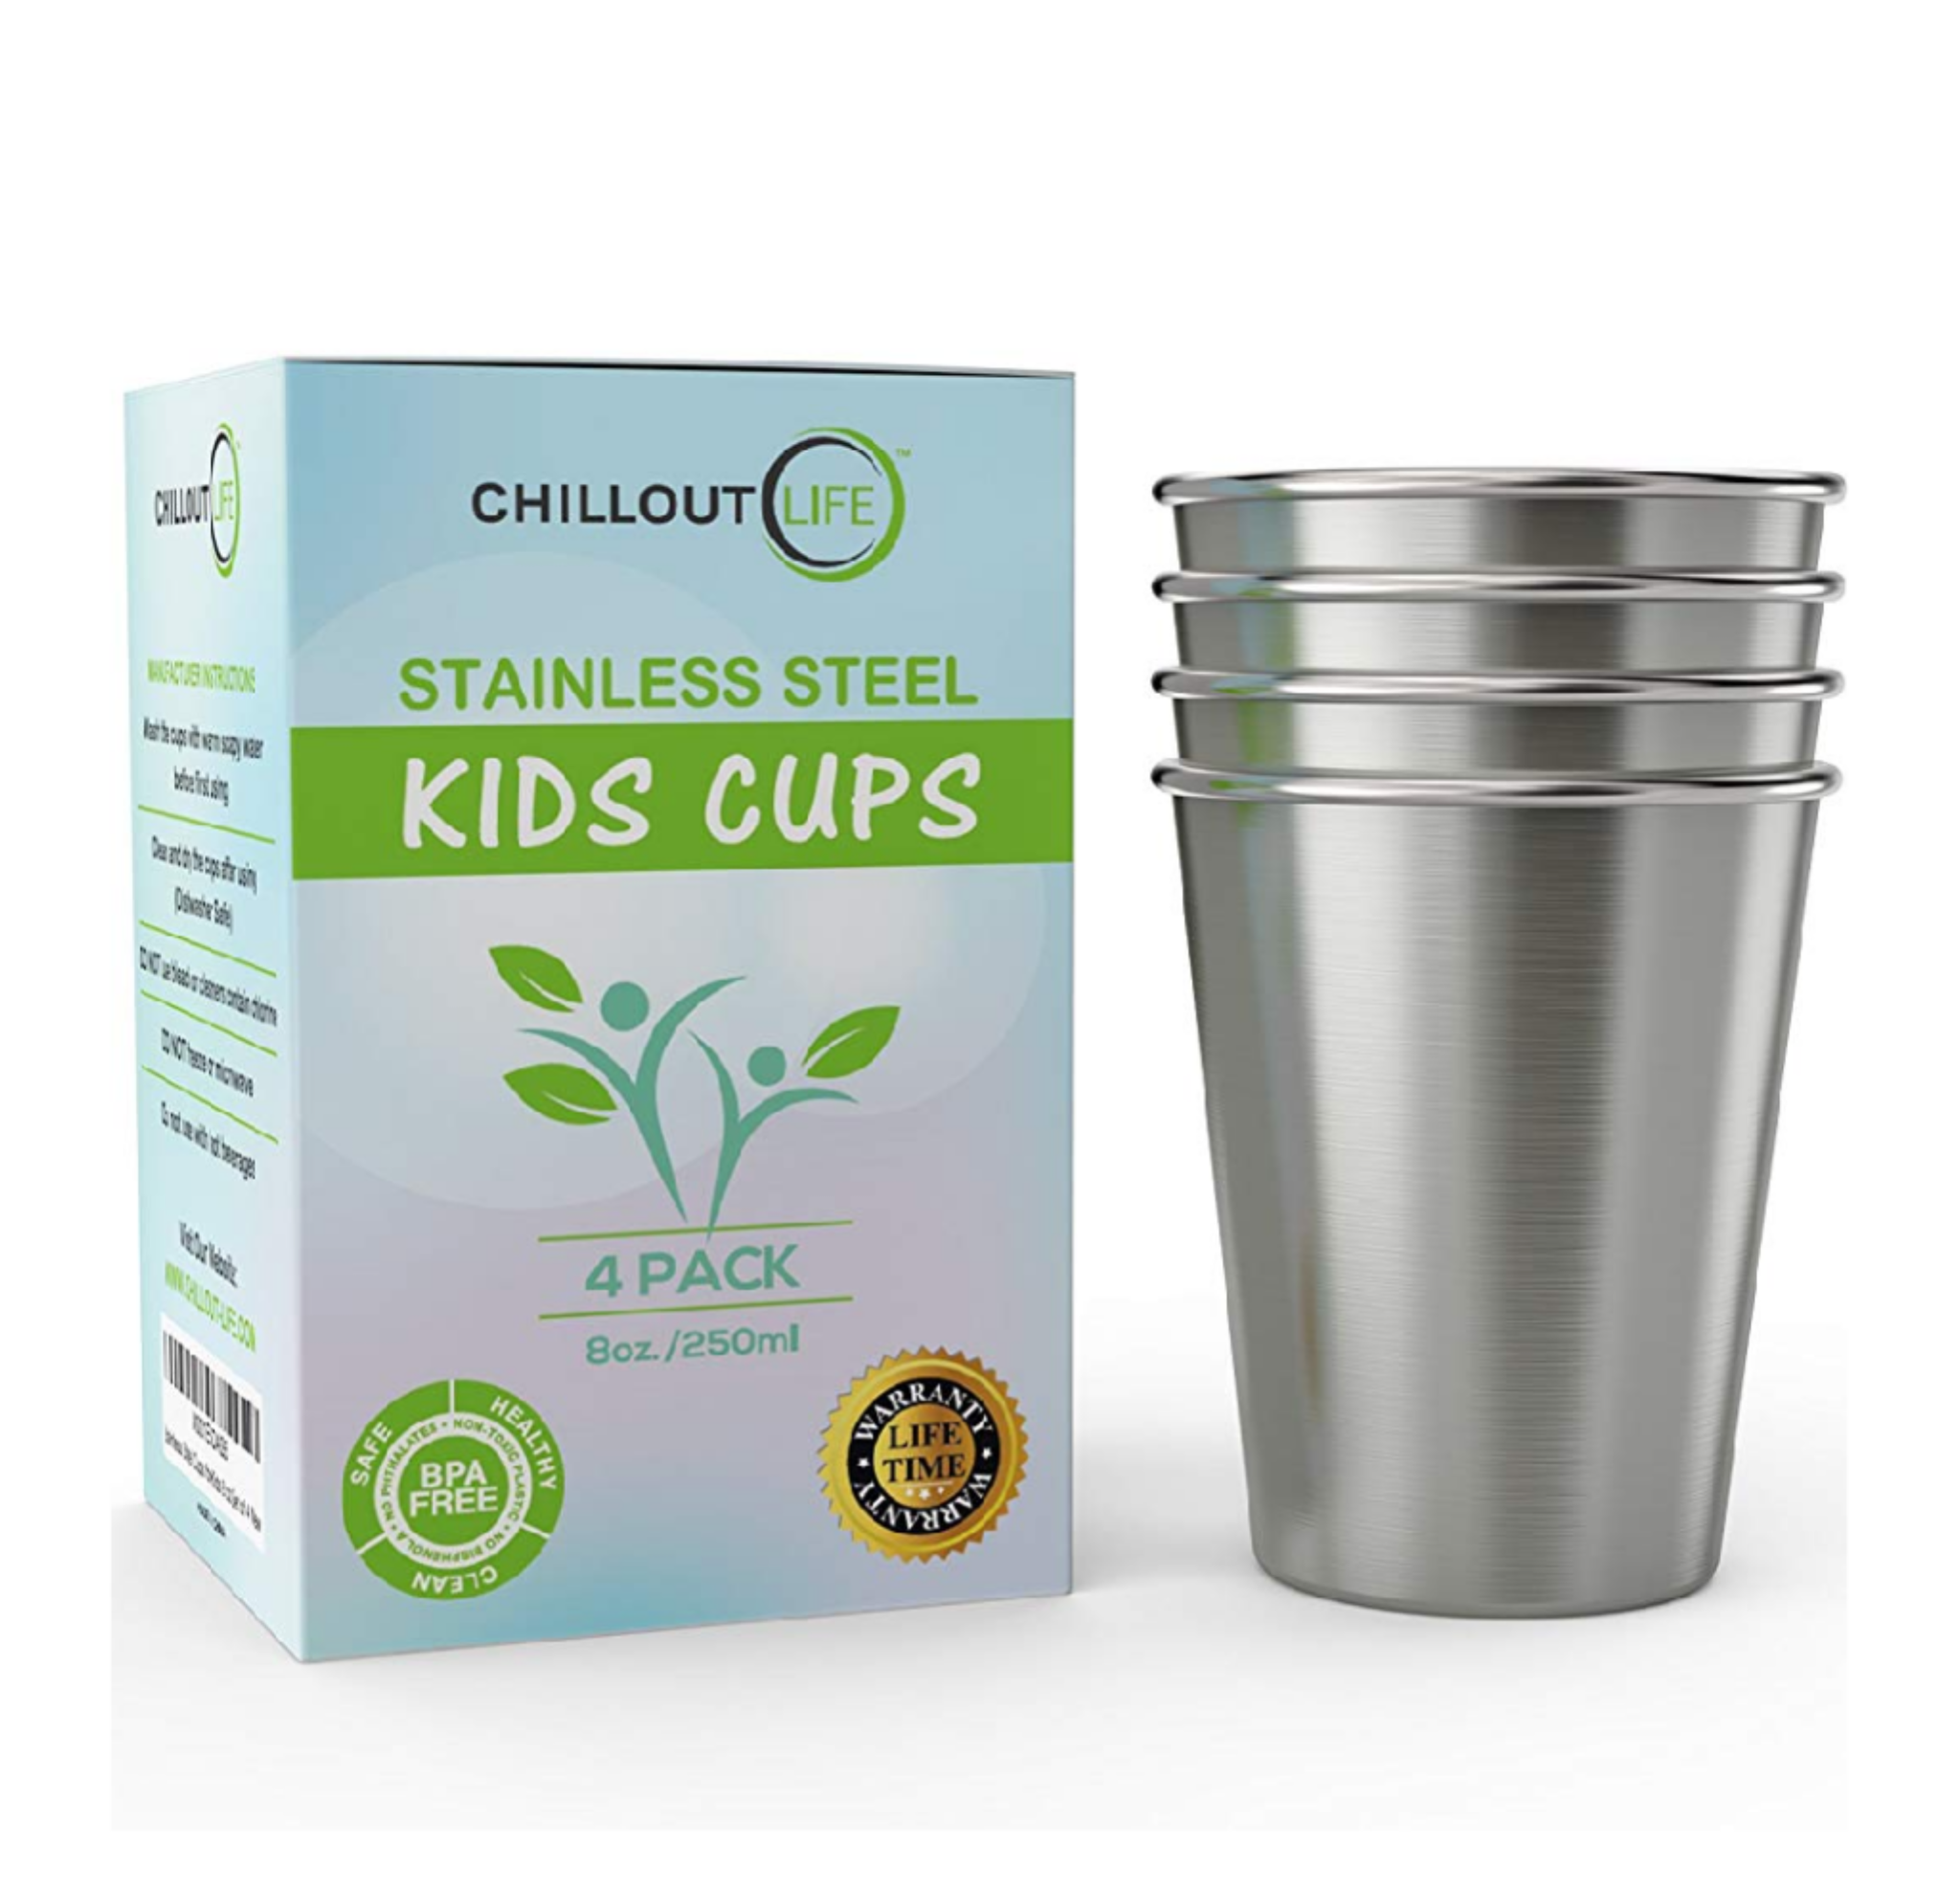 Stainless Steel Kid's Cups